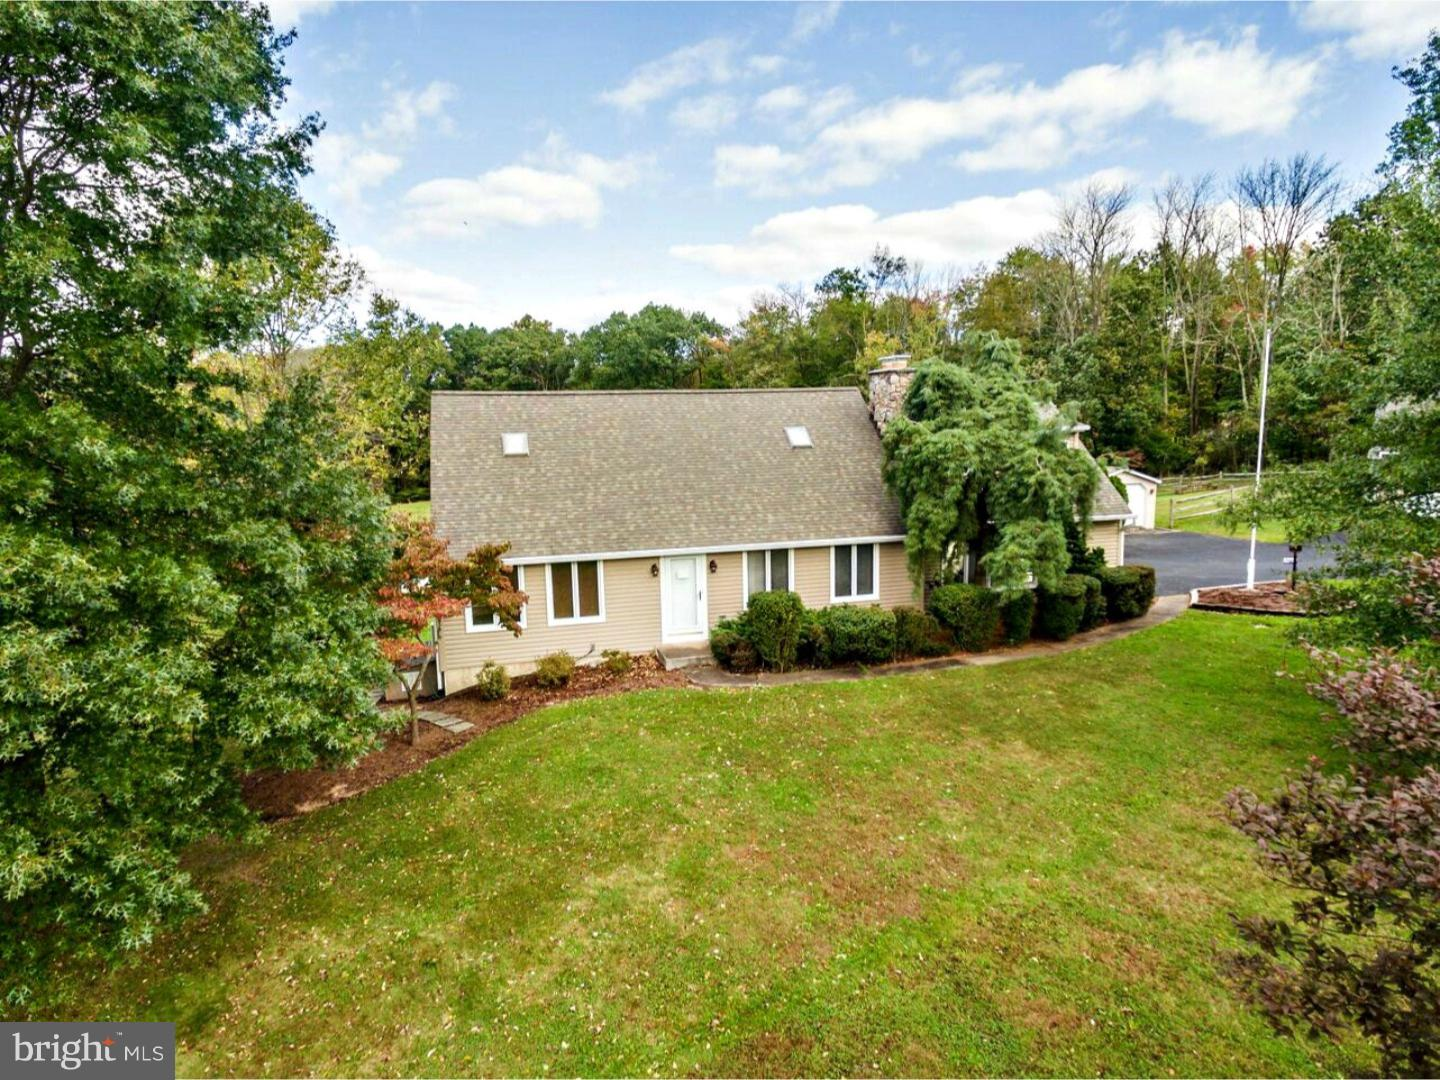 317 CLUMP ROAD, GREEN LANE, PA 18054